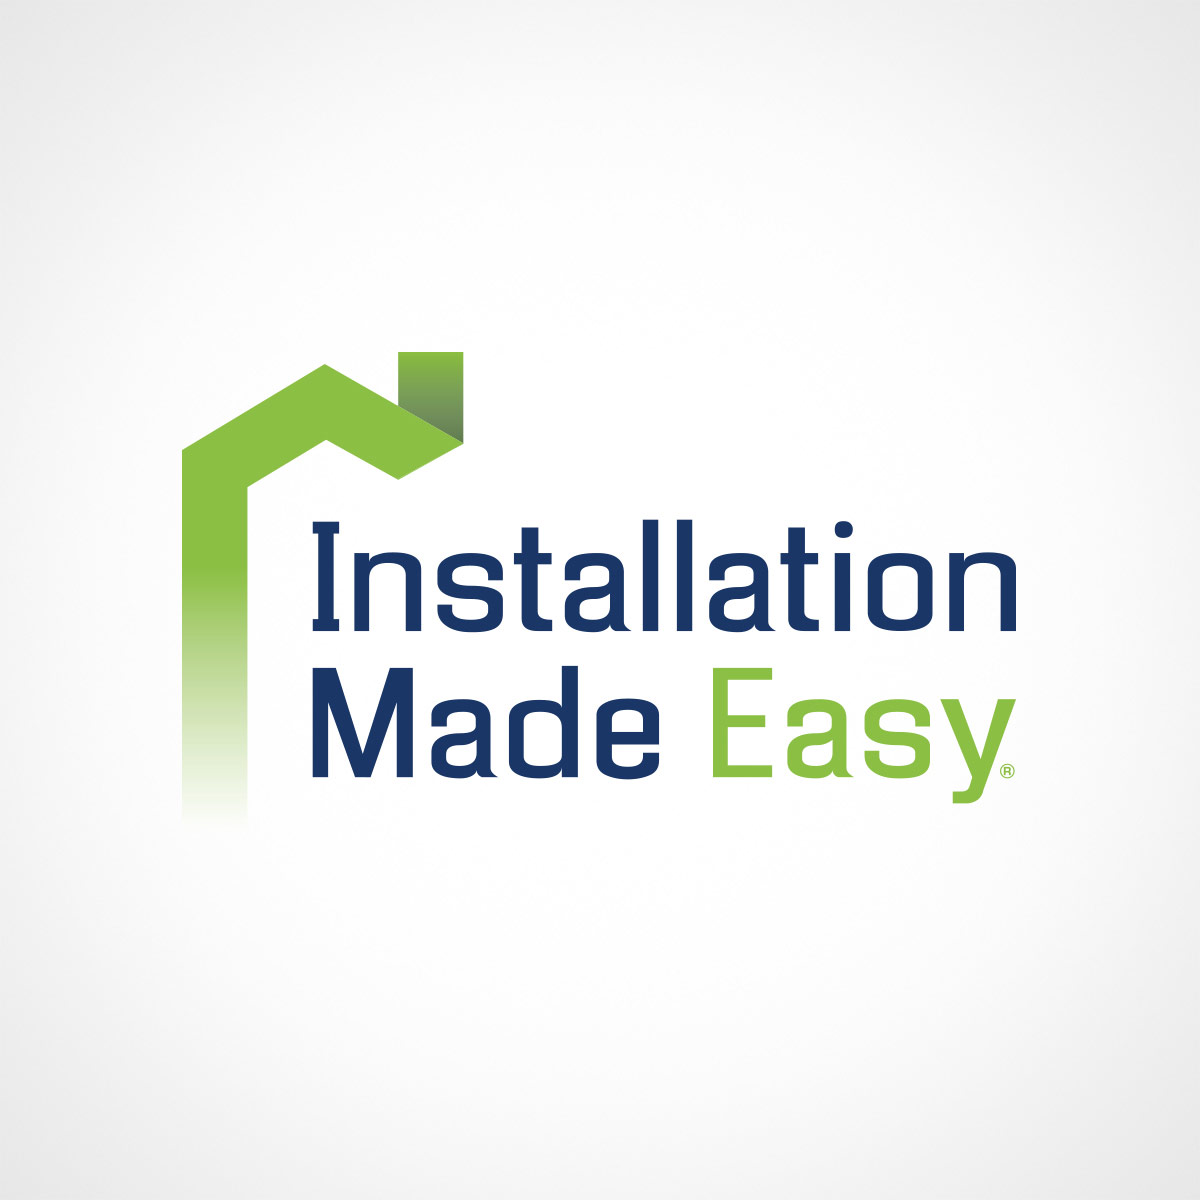 christina-ryan-installation-made-easy-logo-design